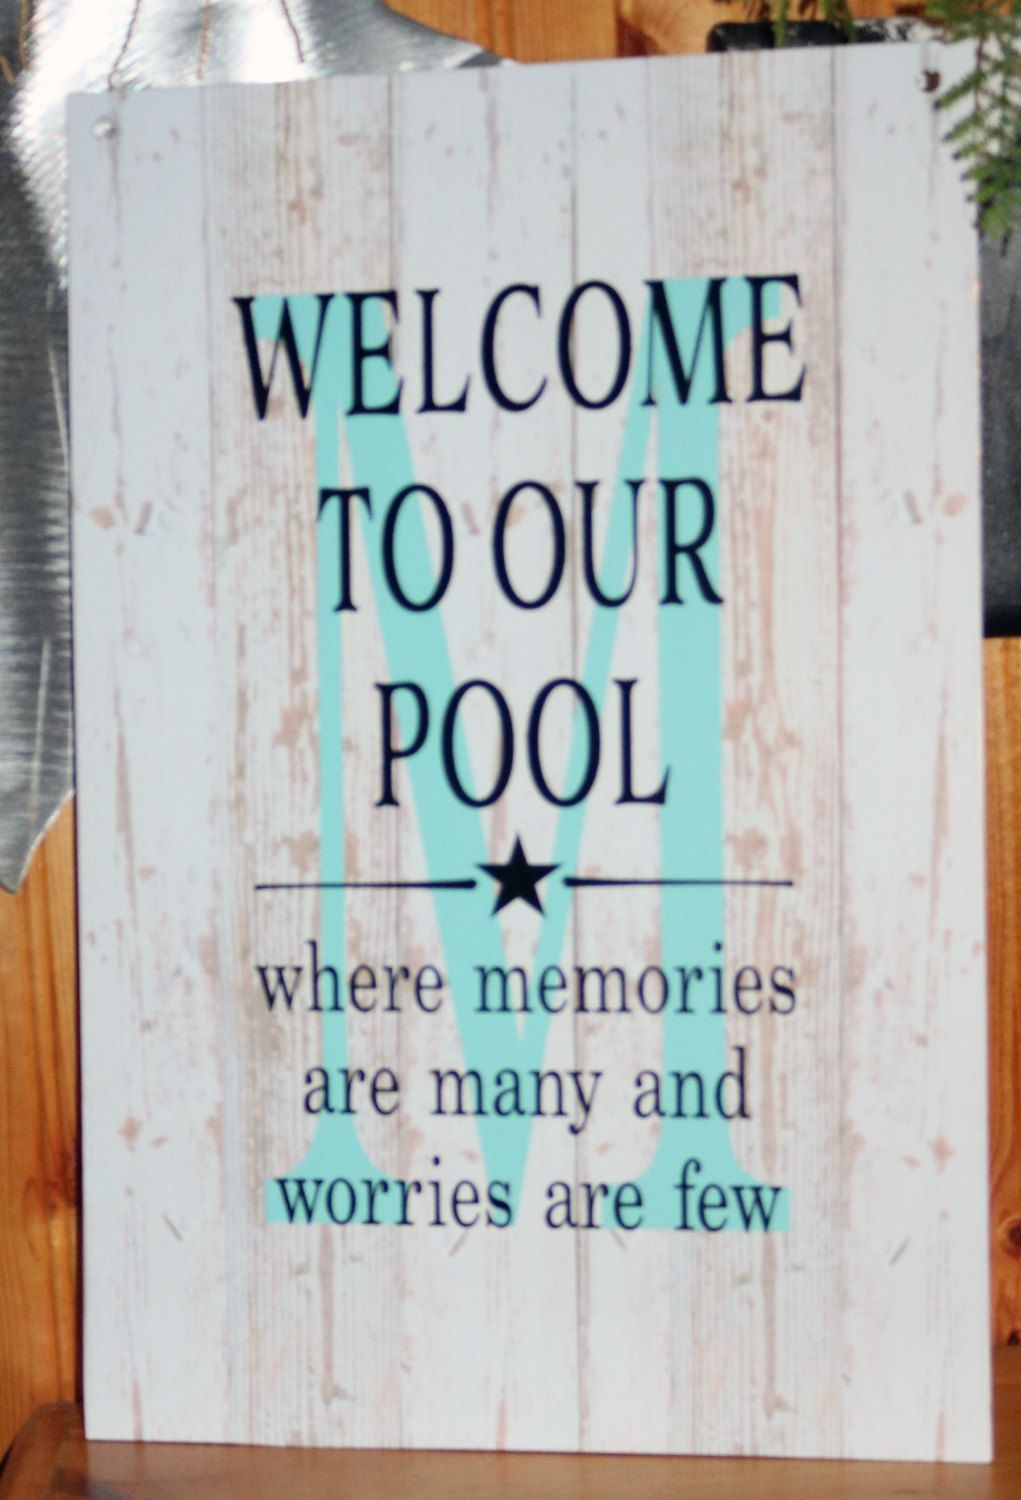 Swimming Pool Plaques Signs Wall Decor Personalized Custom Name Welcome To Our Pool Monogram Initial